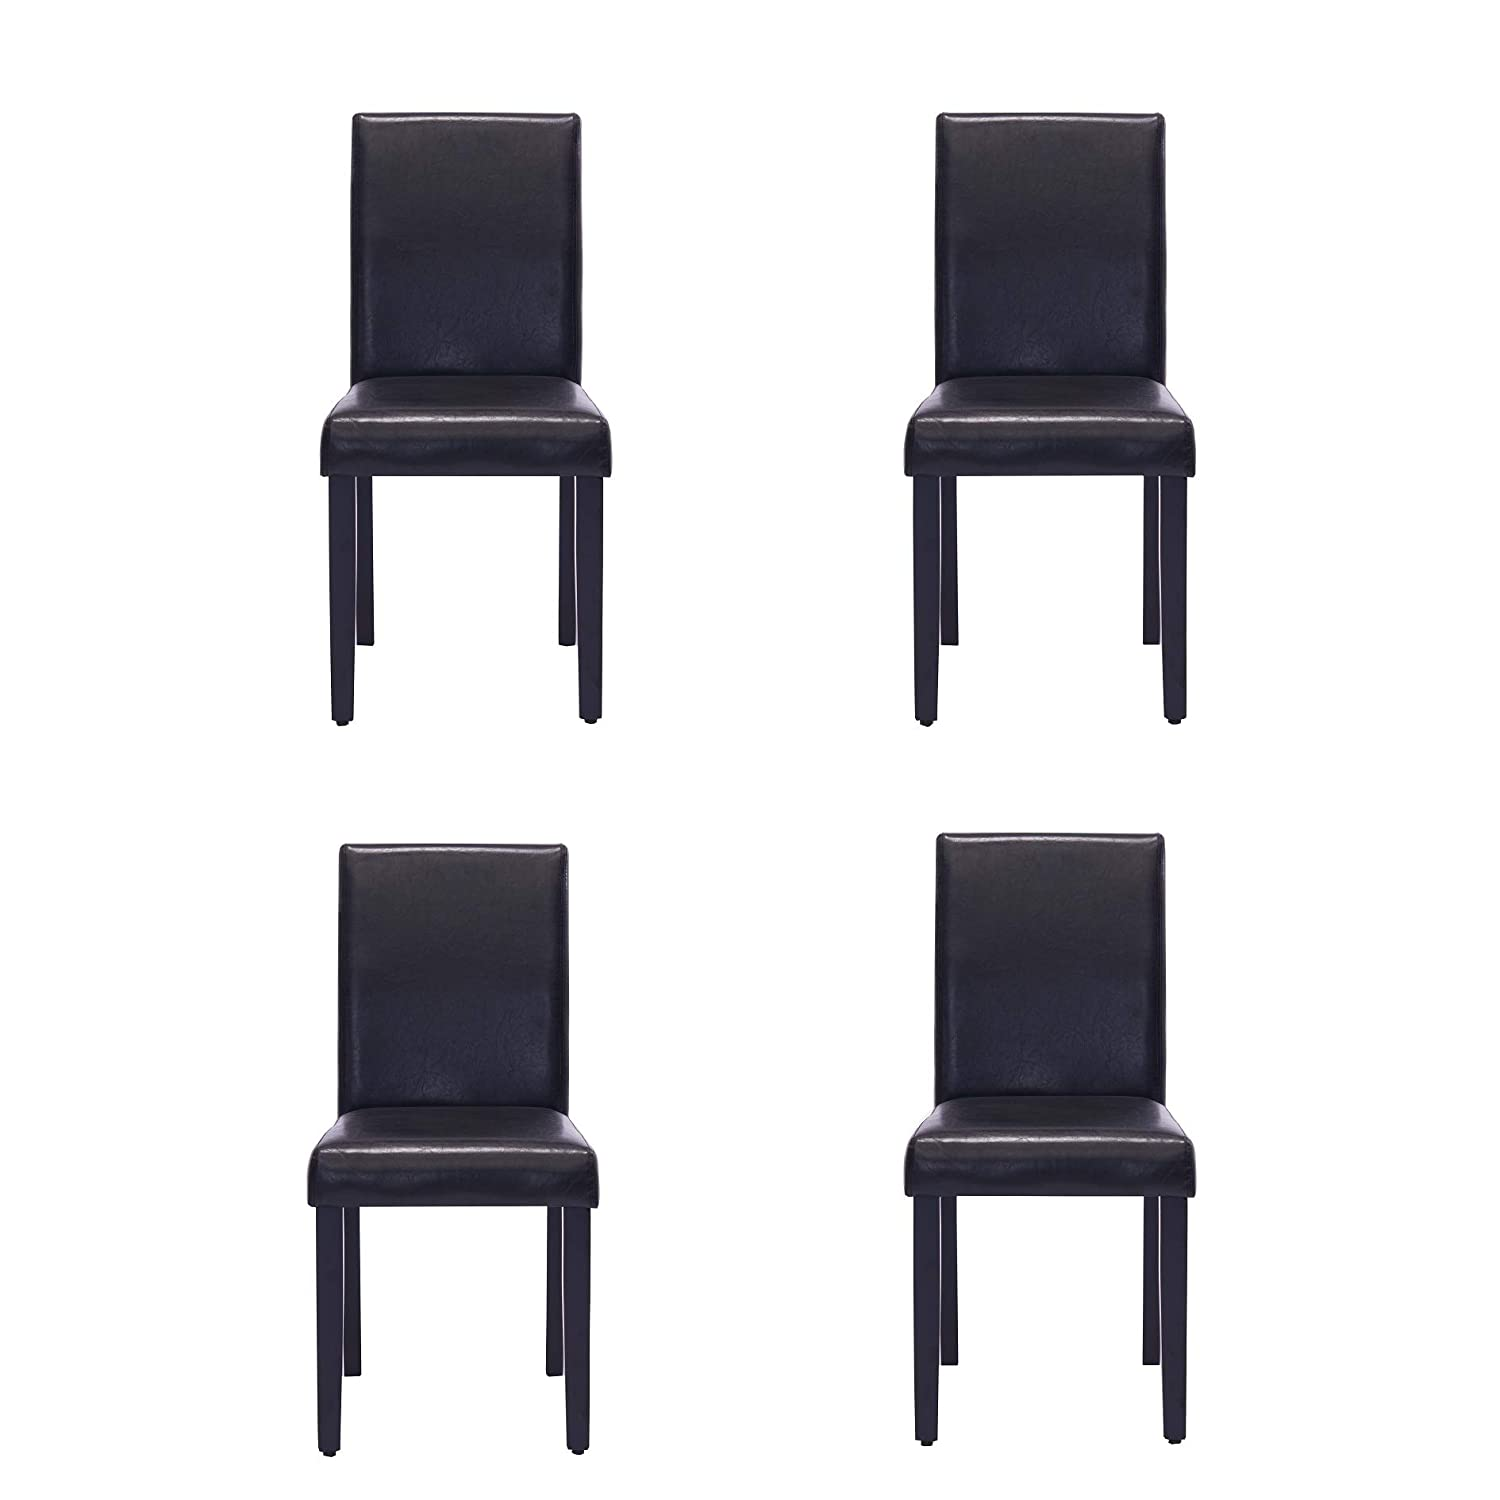 Comfortable Live New Modern Style Dining Chair in Home and Garden with Leather Set of 4 Black